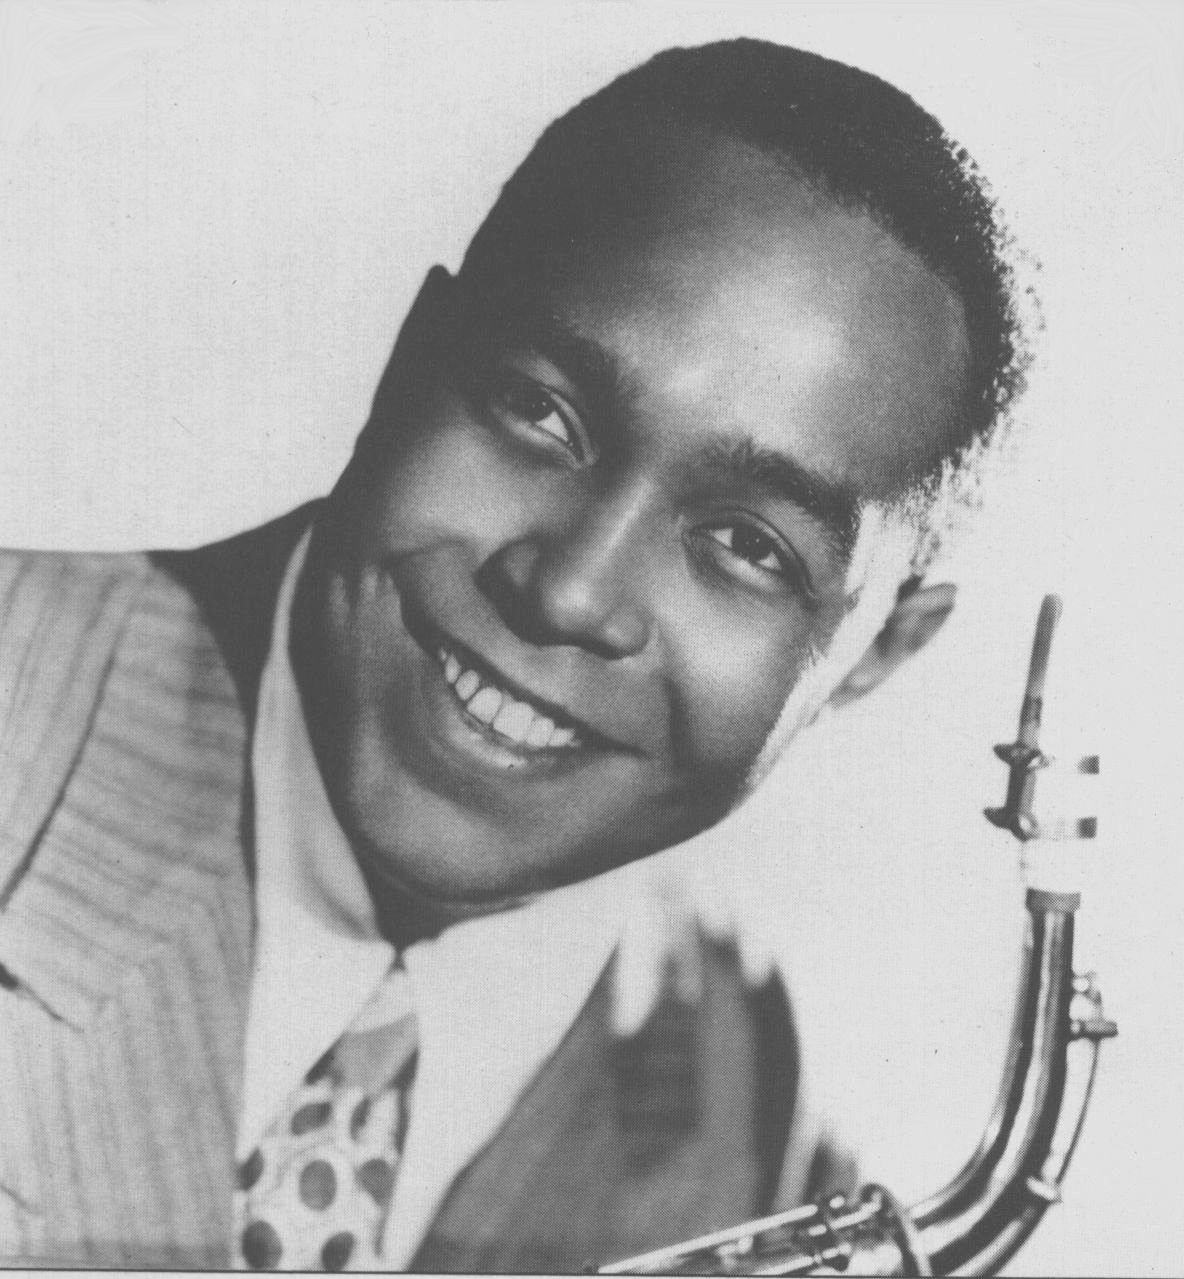 .: interlúdio: Charlie Parker & Stars of Modern Jazz at Carnegie Hall (Christmas 1949) :.